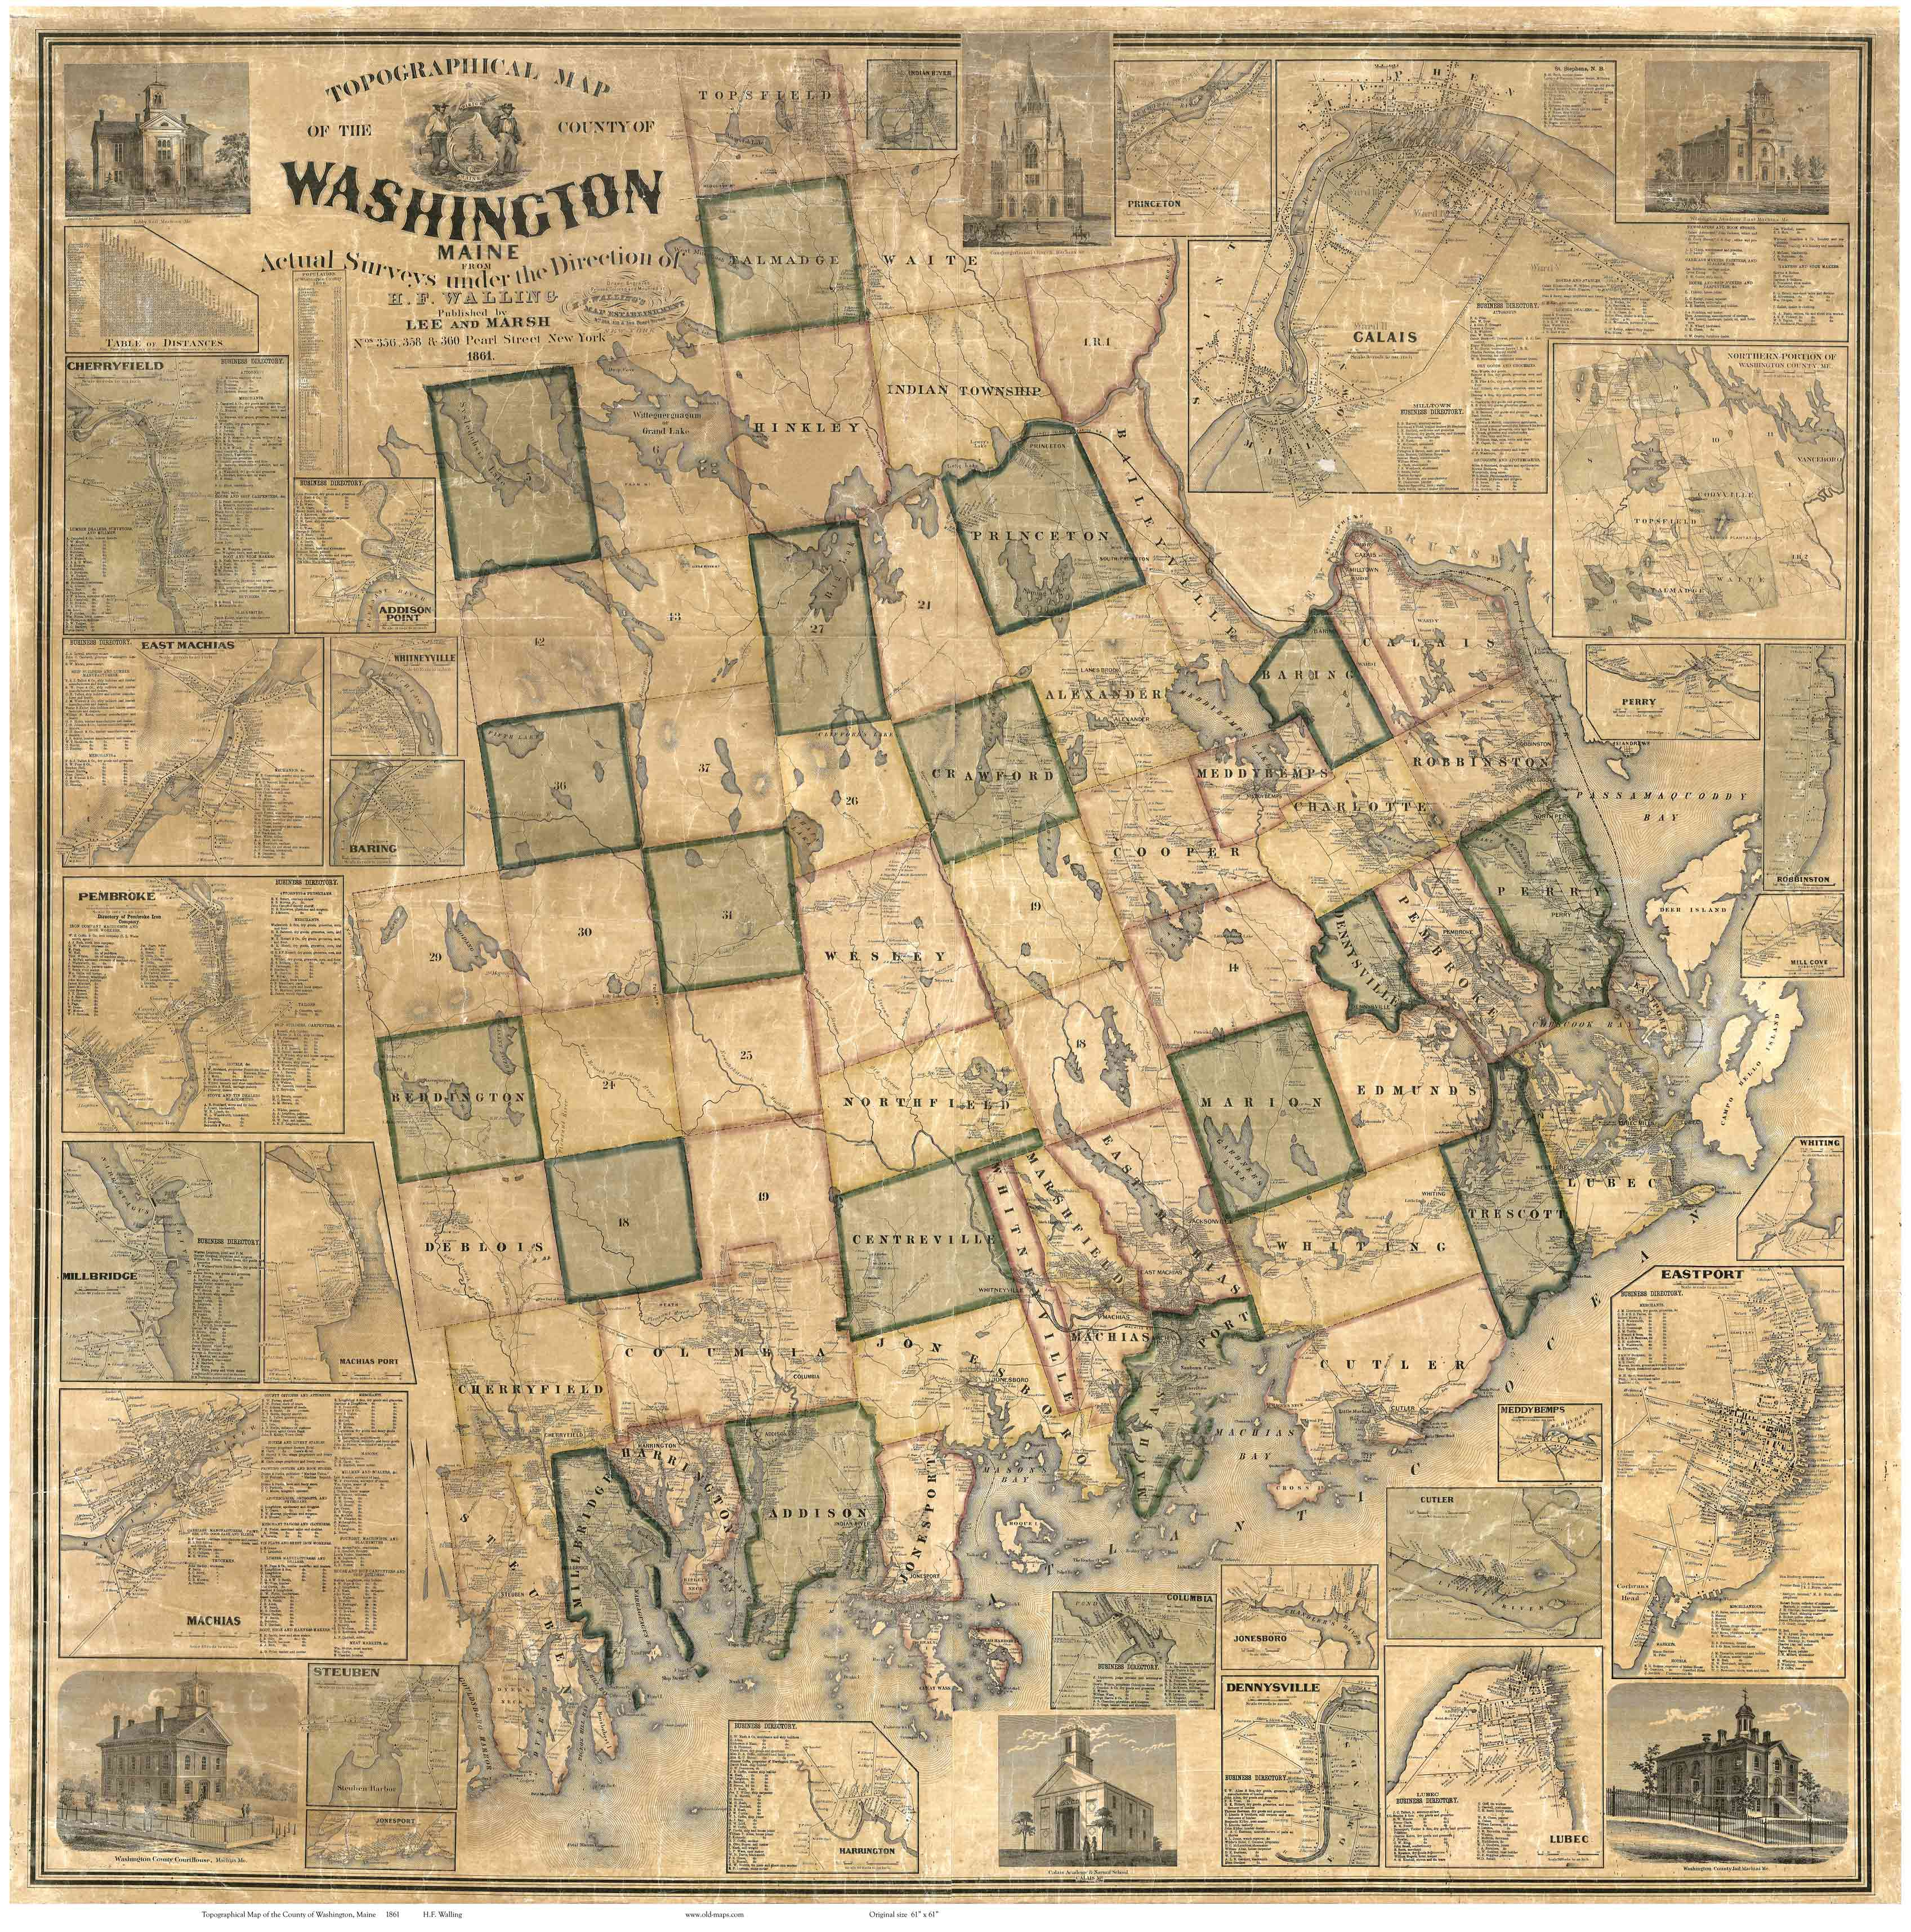 Washington County Maine 1861 Maps